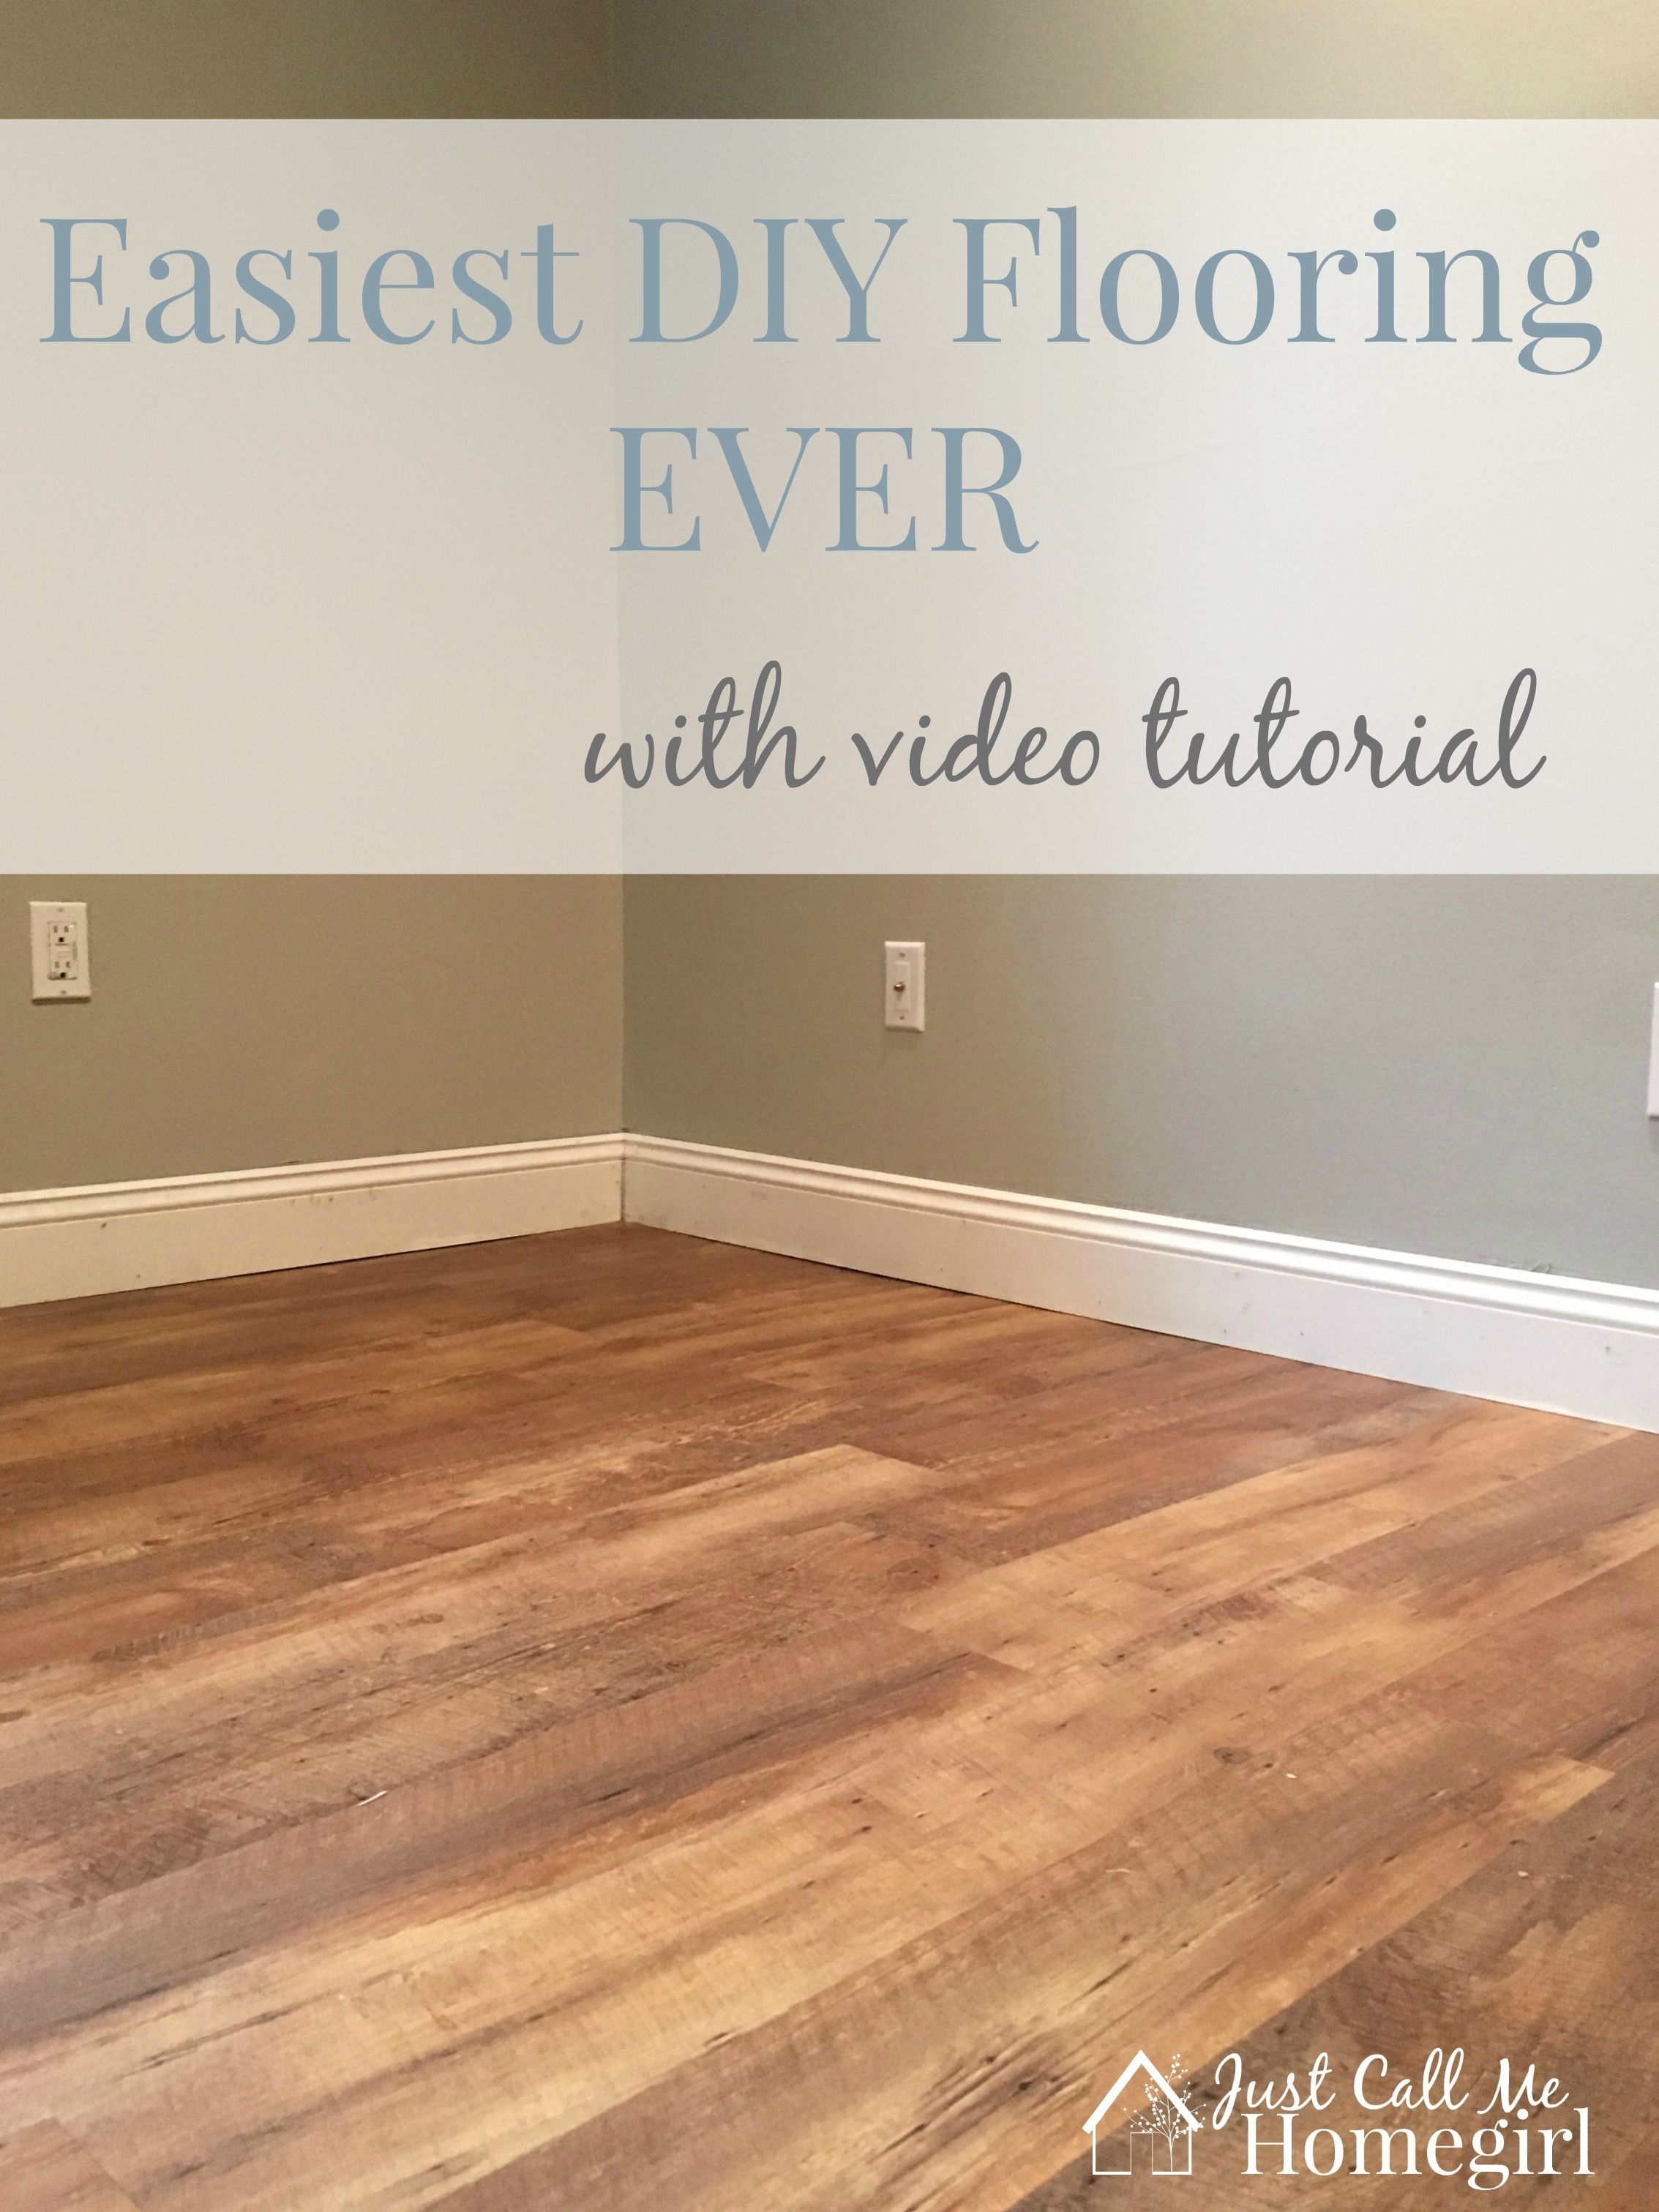 lds trafficmaster plank flooring to sample resilient mom floor many allure